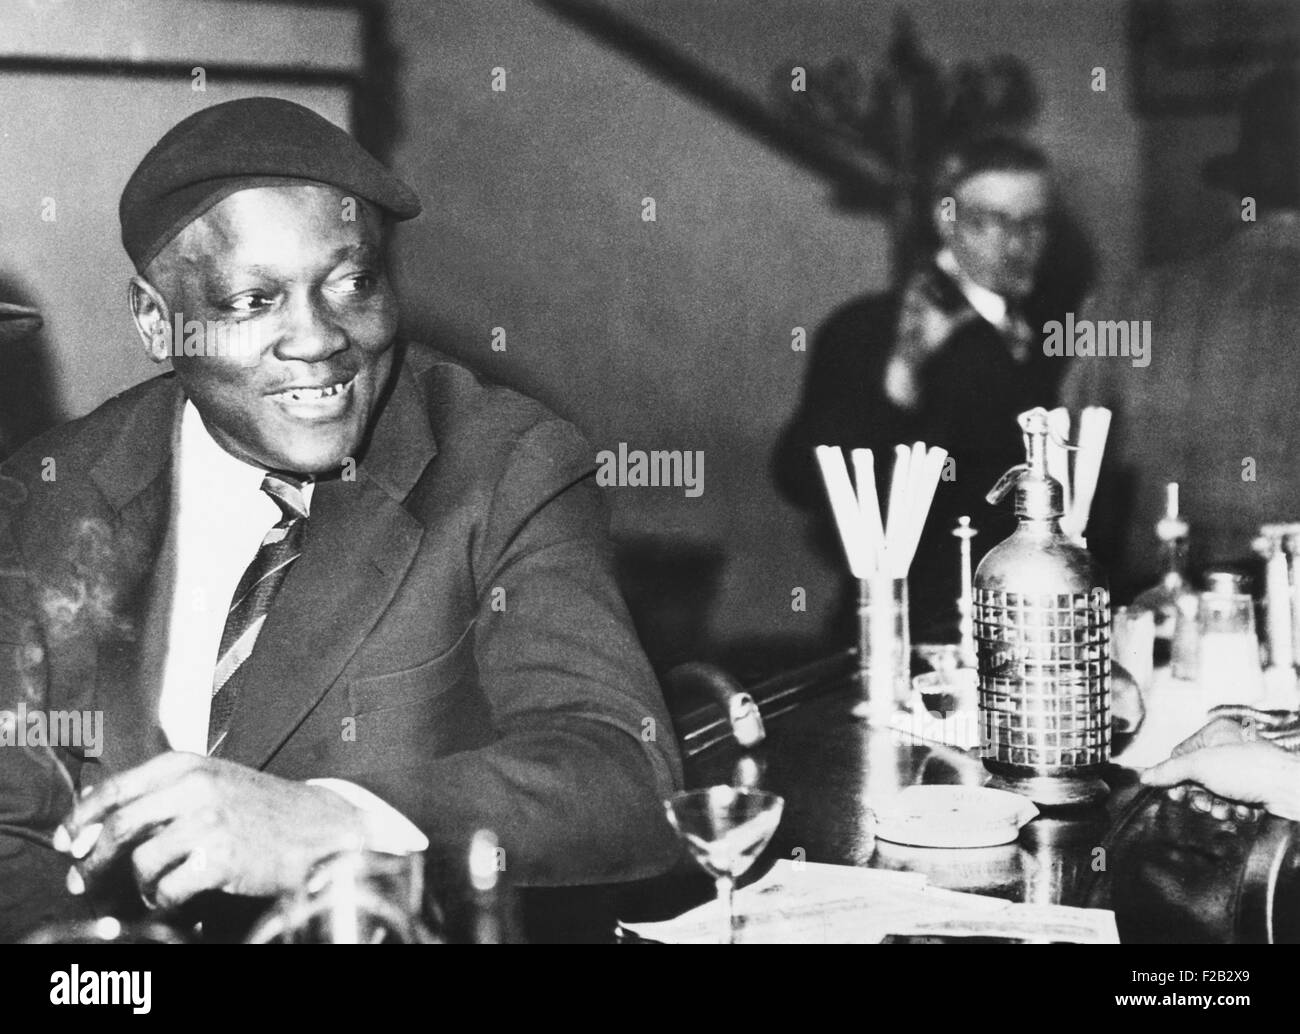 Jack Johnson former heavyweight champion in Paris April 4, 1933. Jack Johnson lived in Paris before World War 1, - Stock Image